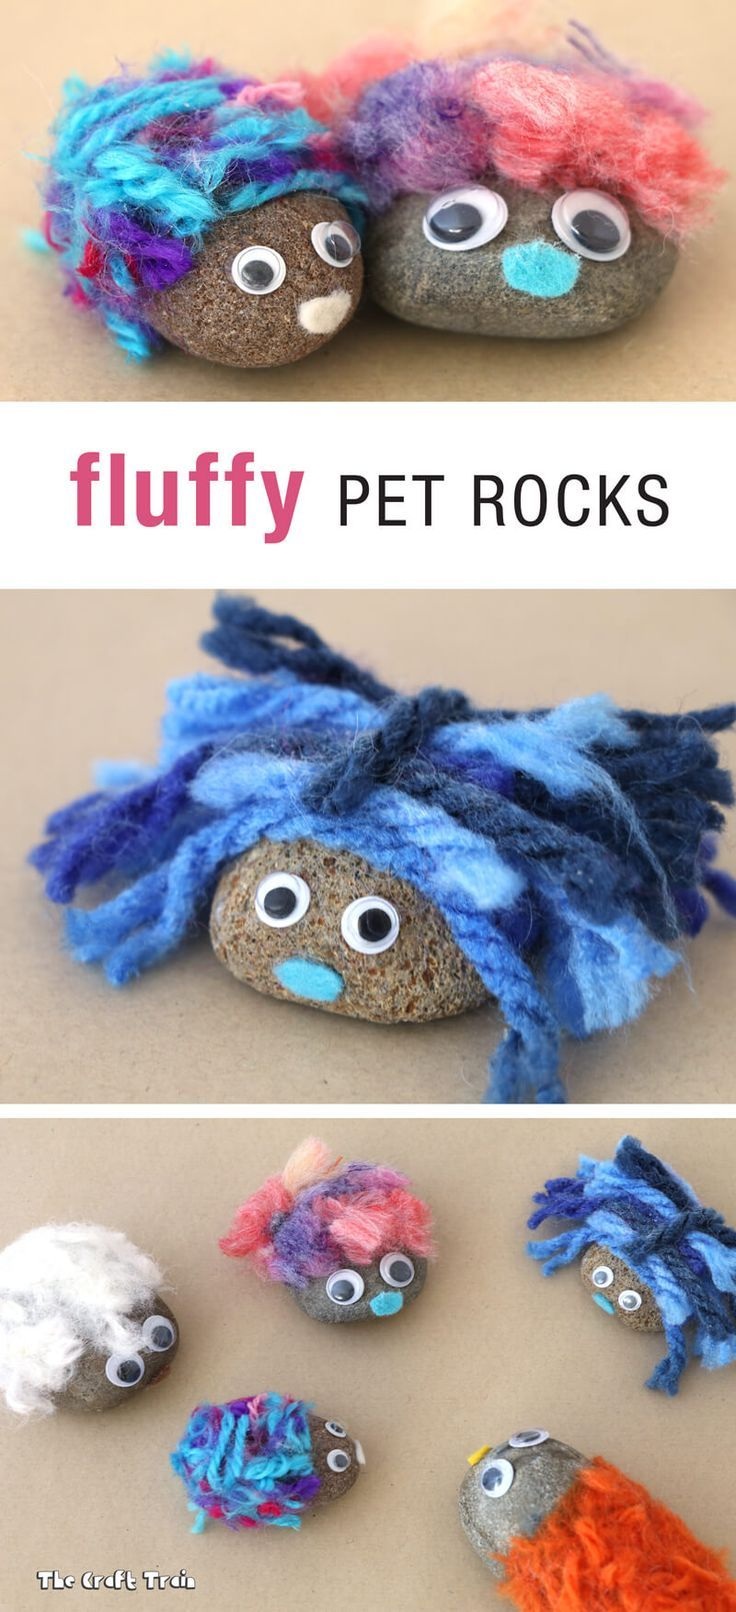 DIY Craft: Create adorable fluffy pet rocks using yarn from pom pom trimmings. This is a fun and easy rock craft for kids